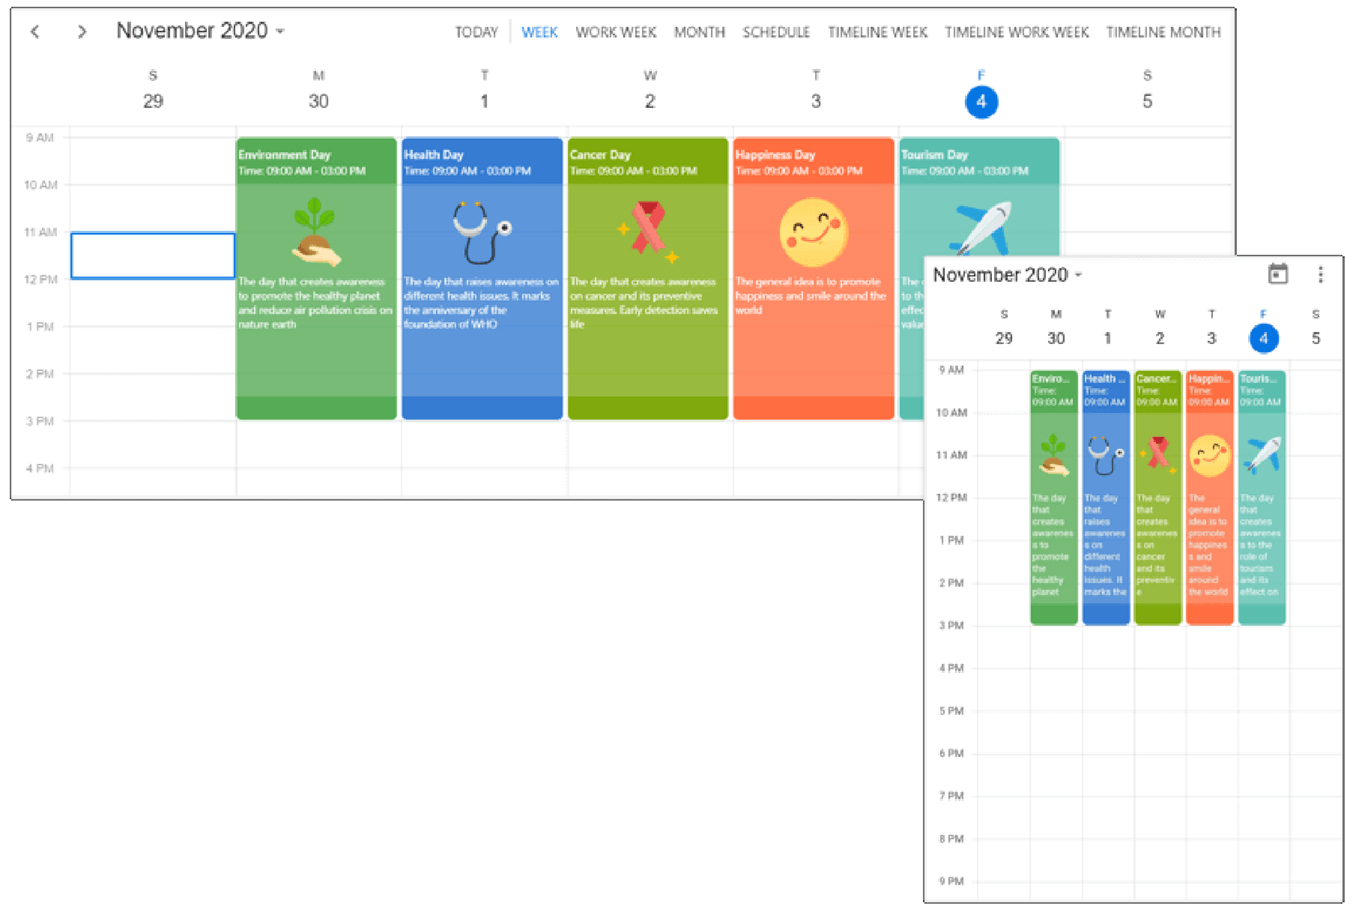 Custom UI design for events, appointments, and special time region